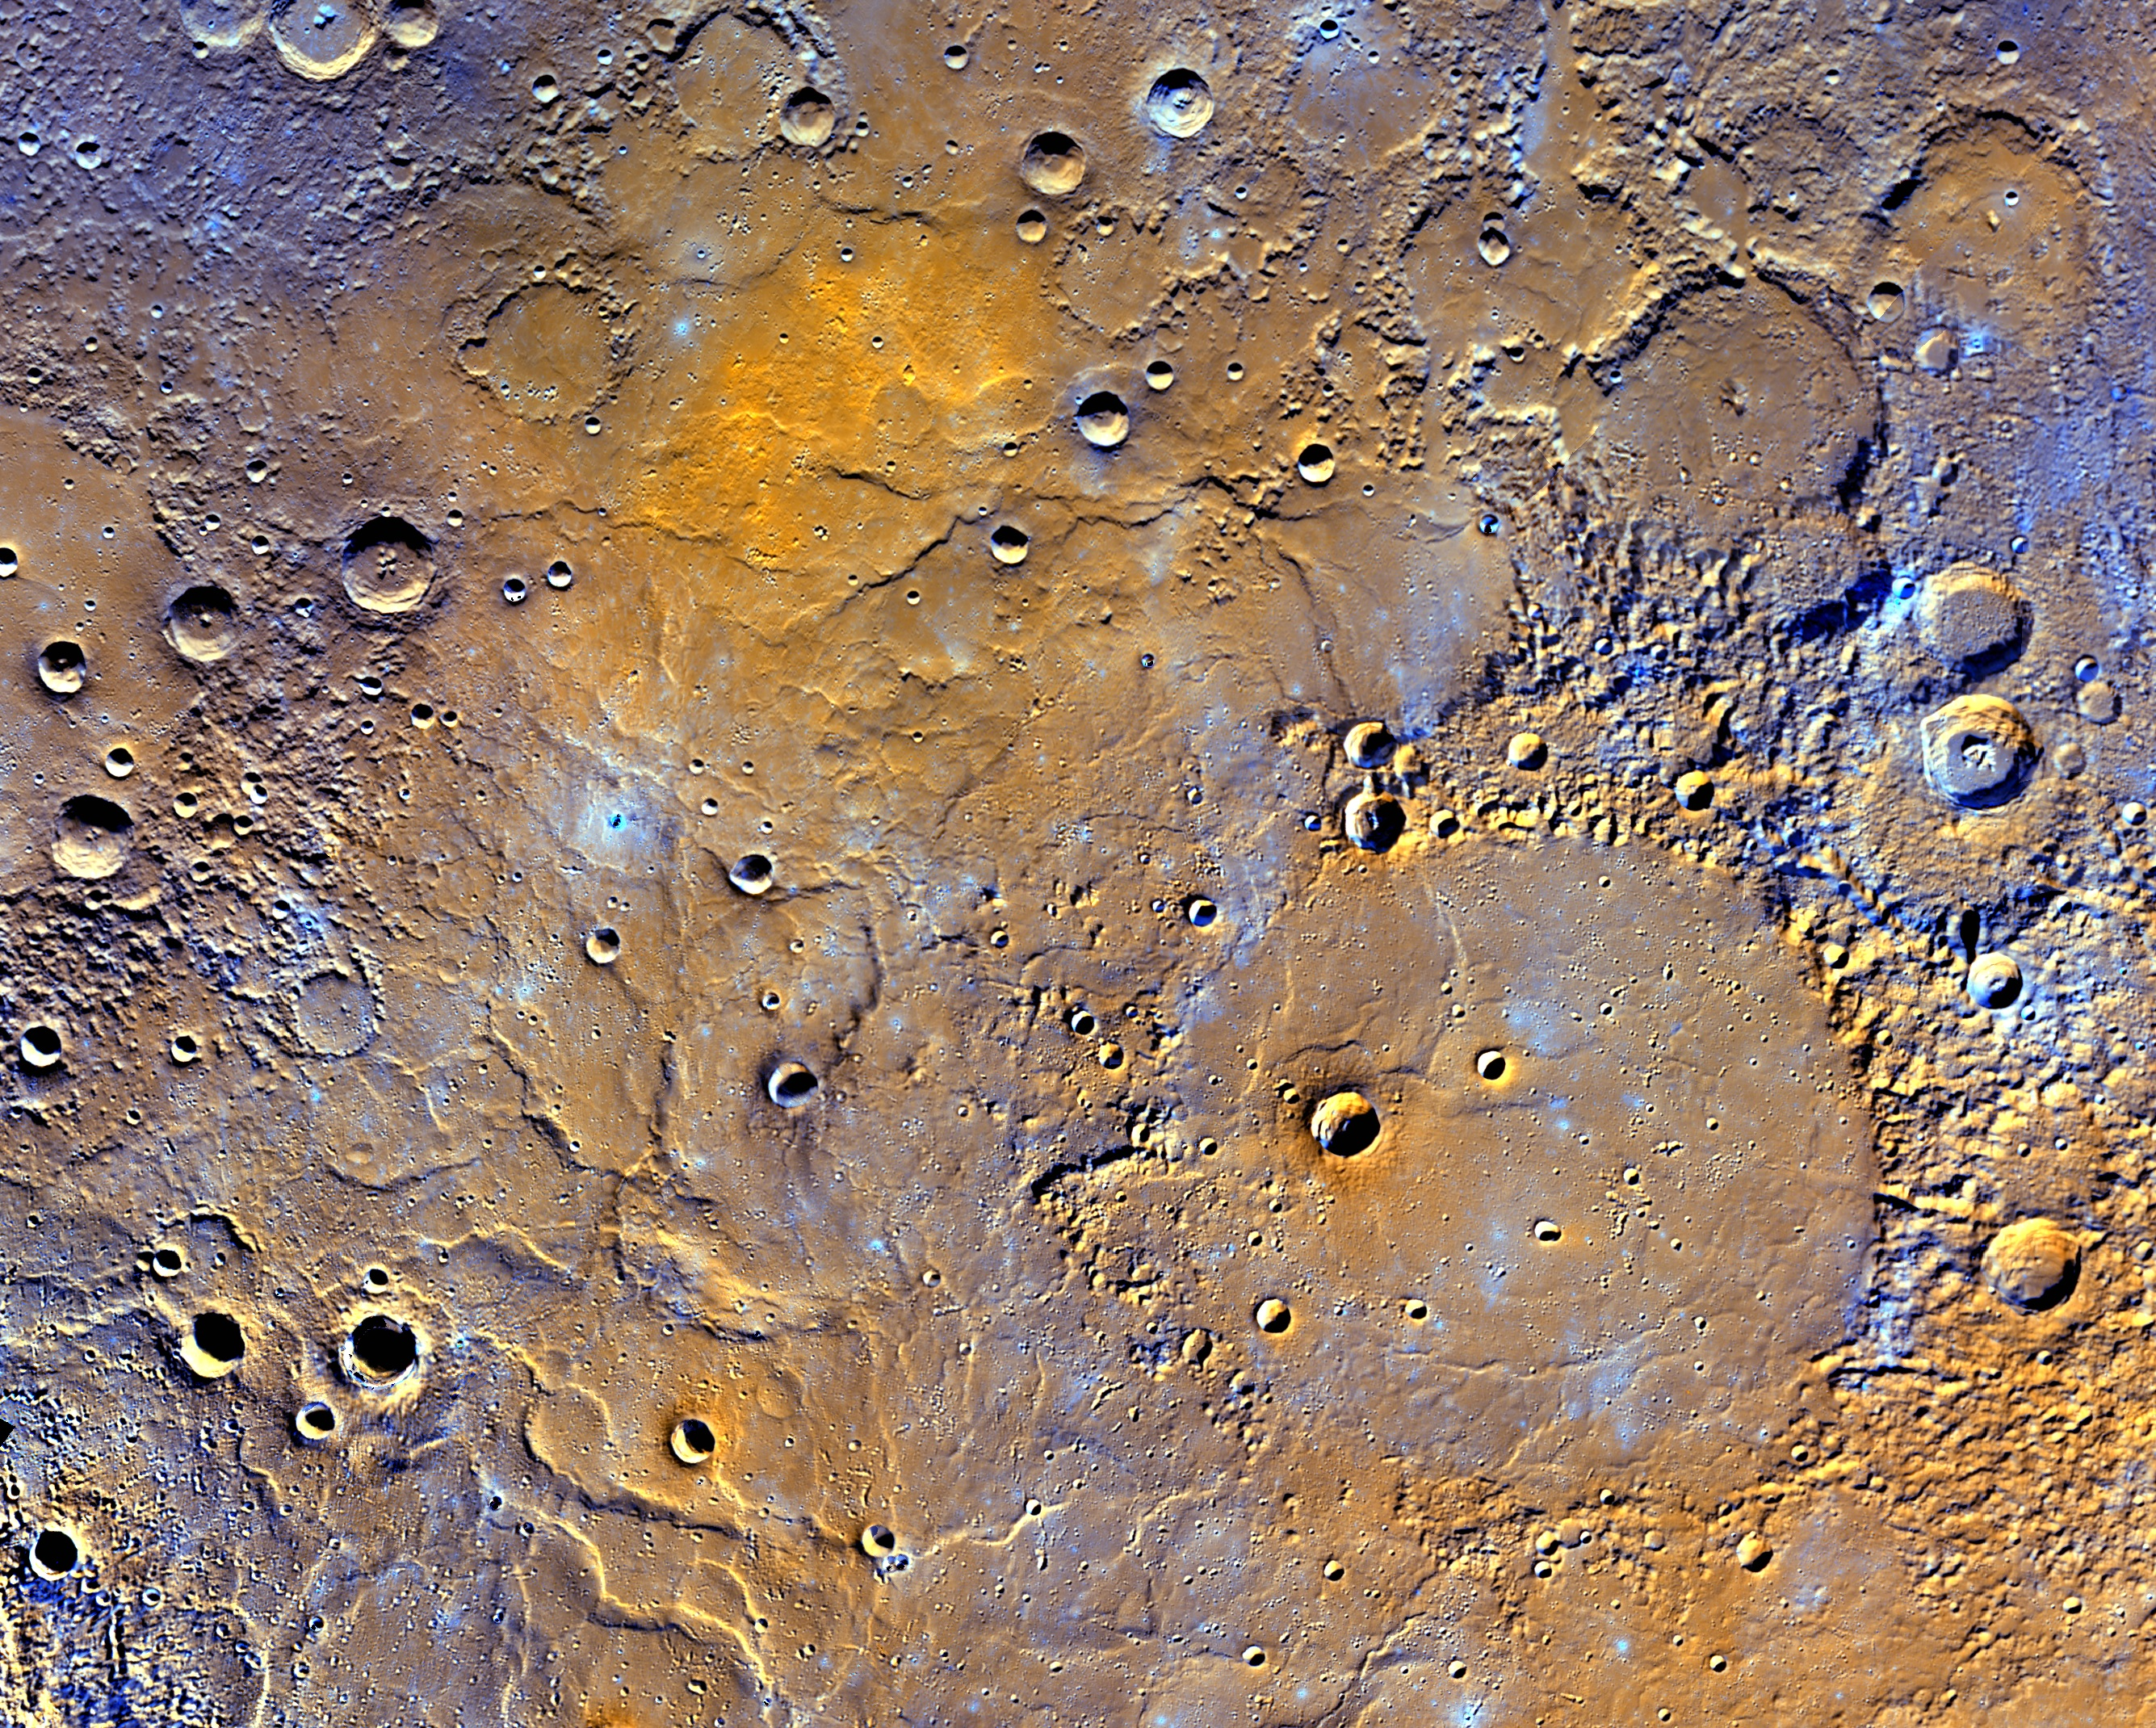 The cratered surface of Mercury's north pole